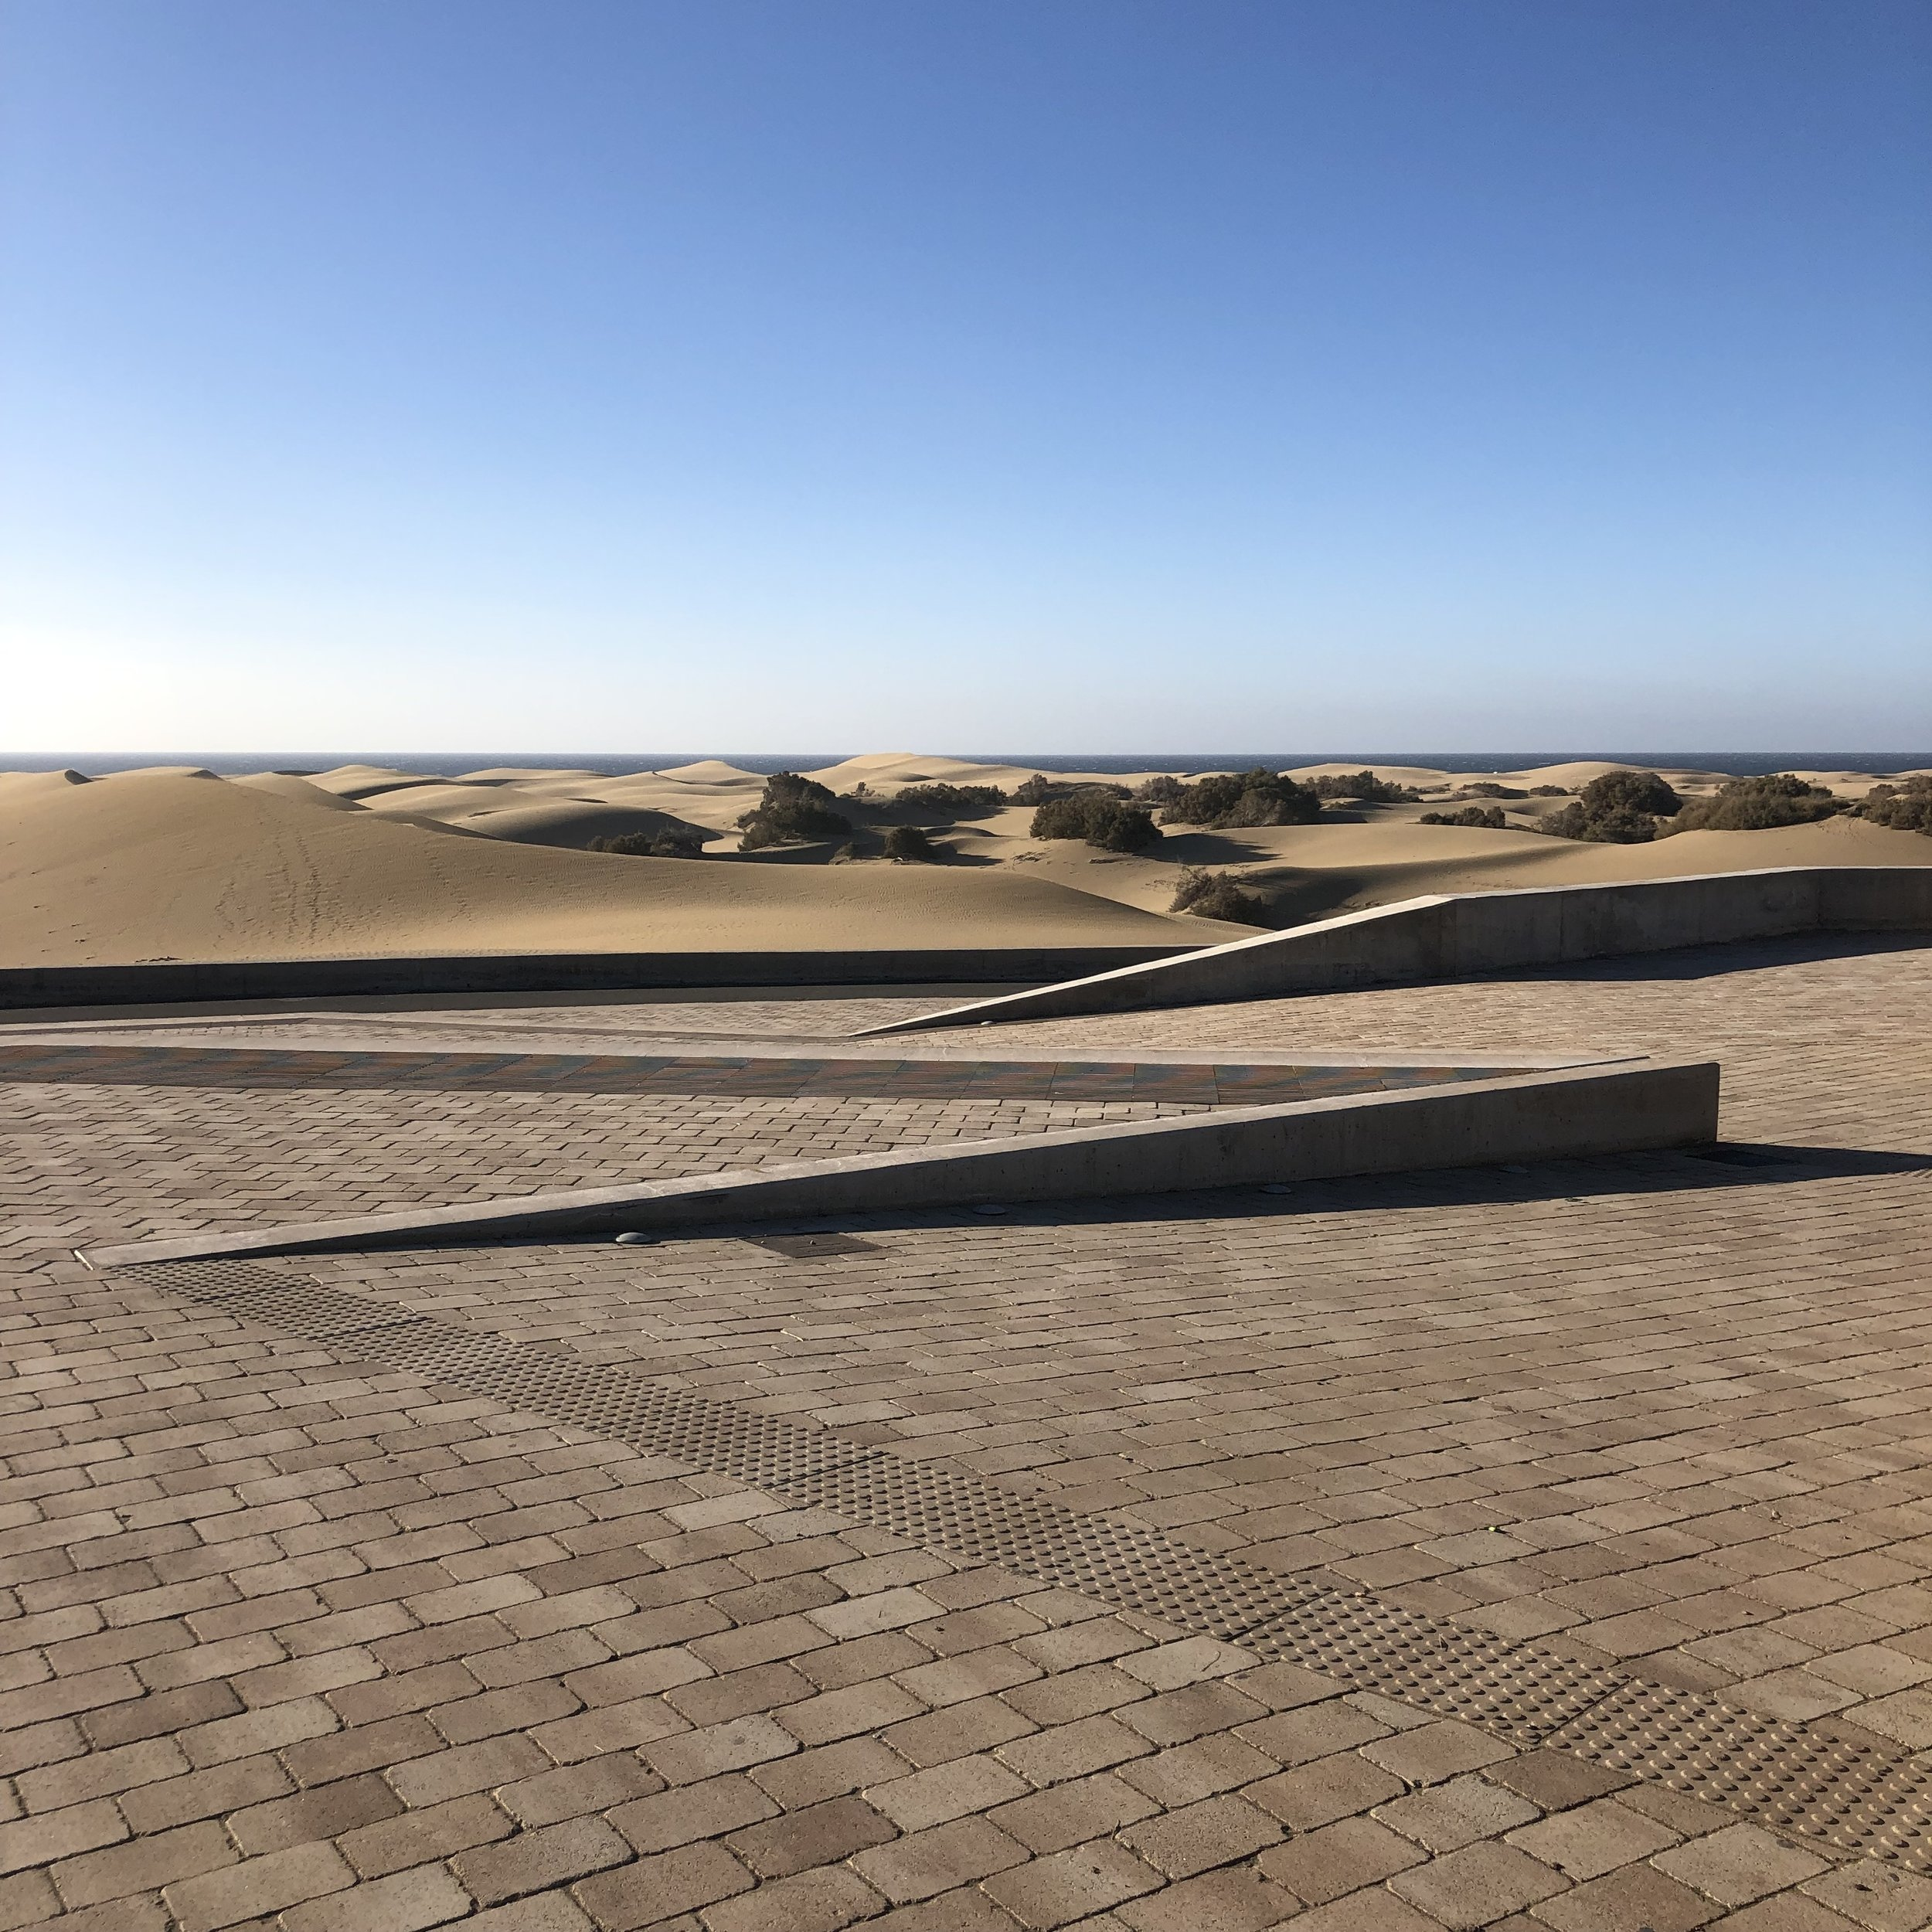 The lookout at the dunes of Maspalomas.